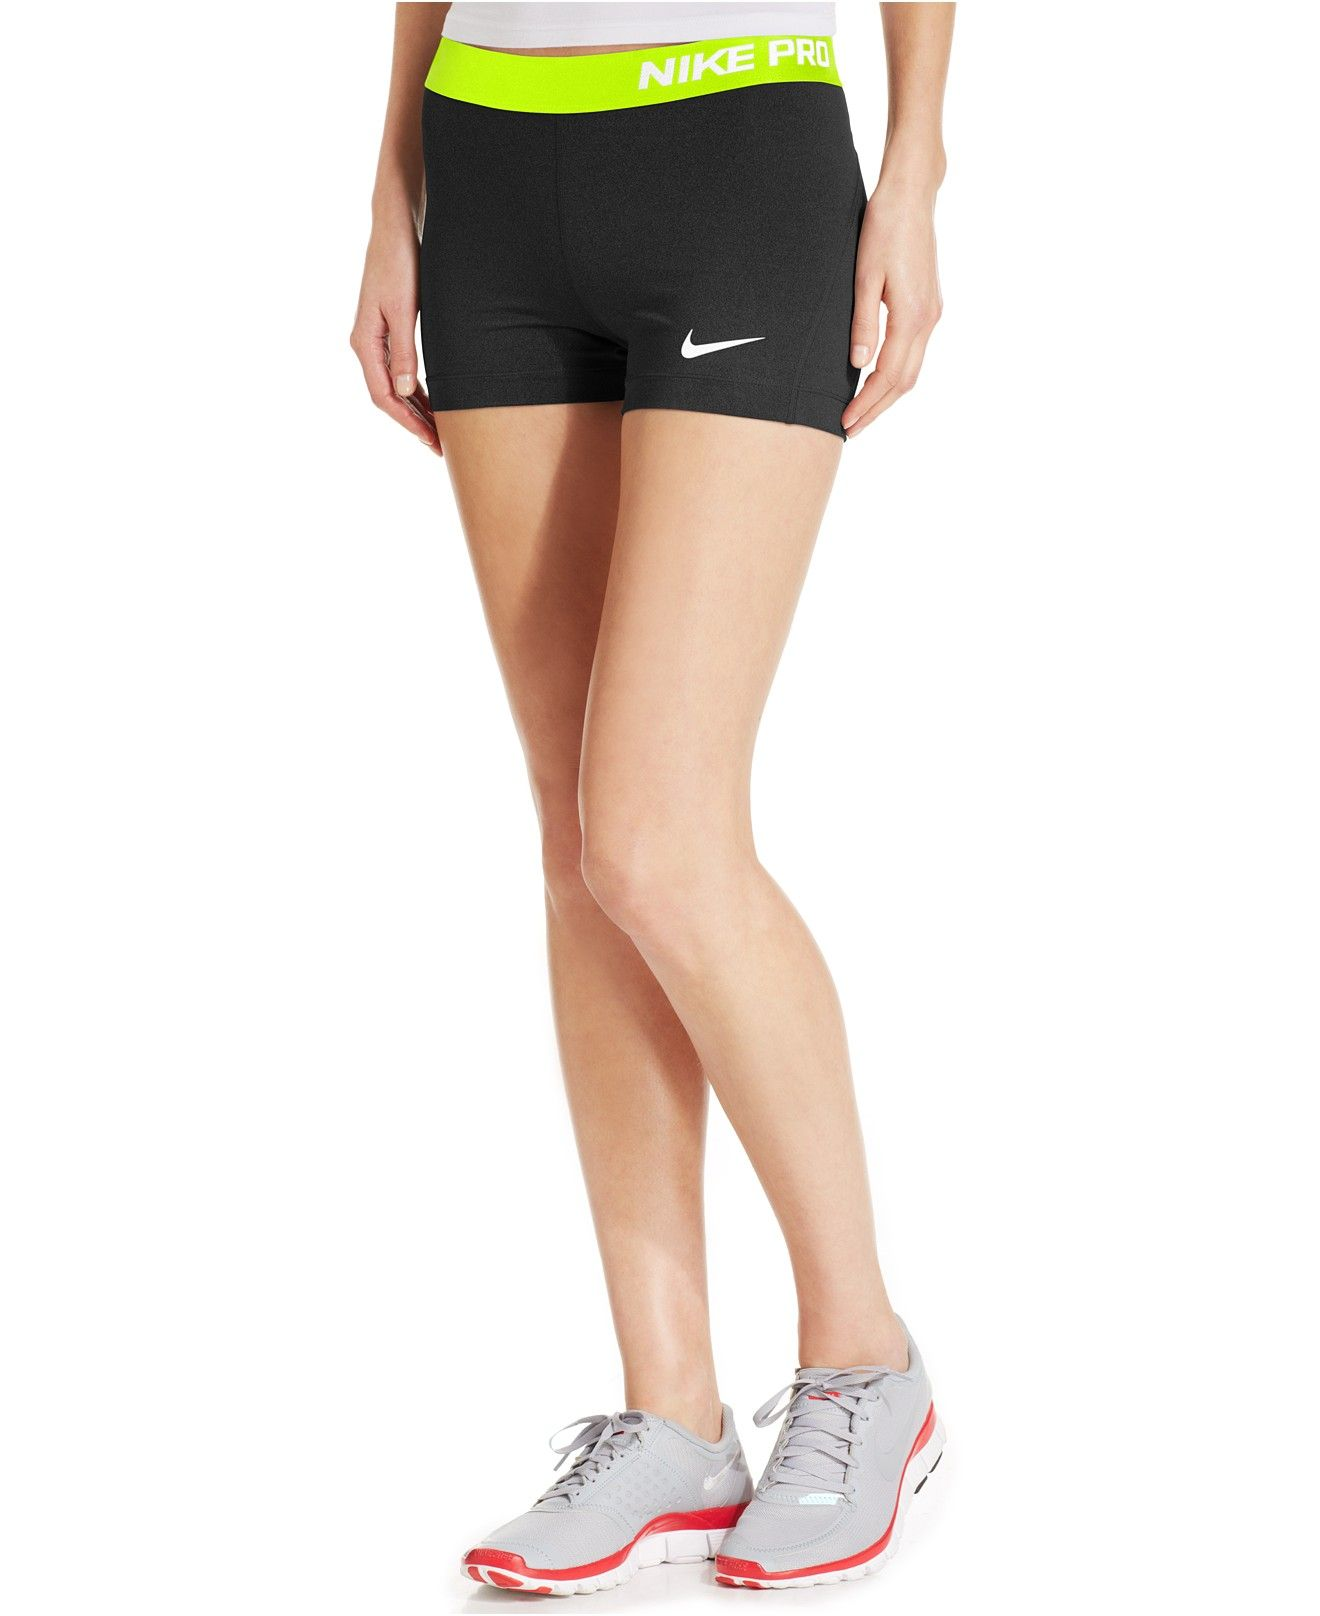 a87a190c Nike Pro Compression Shorts, 3 inches - Shorts - Women - Macy's ...